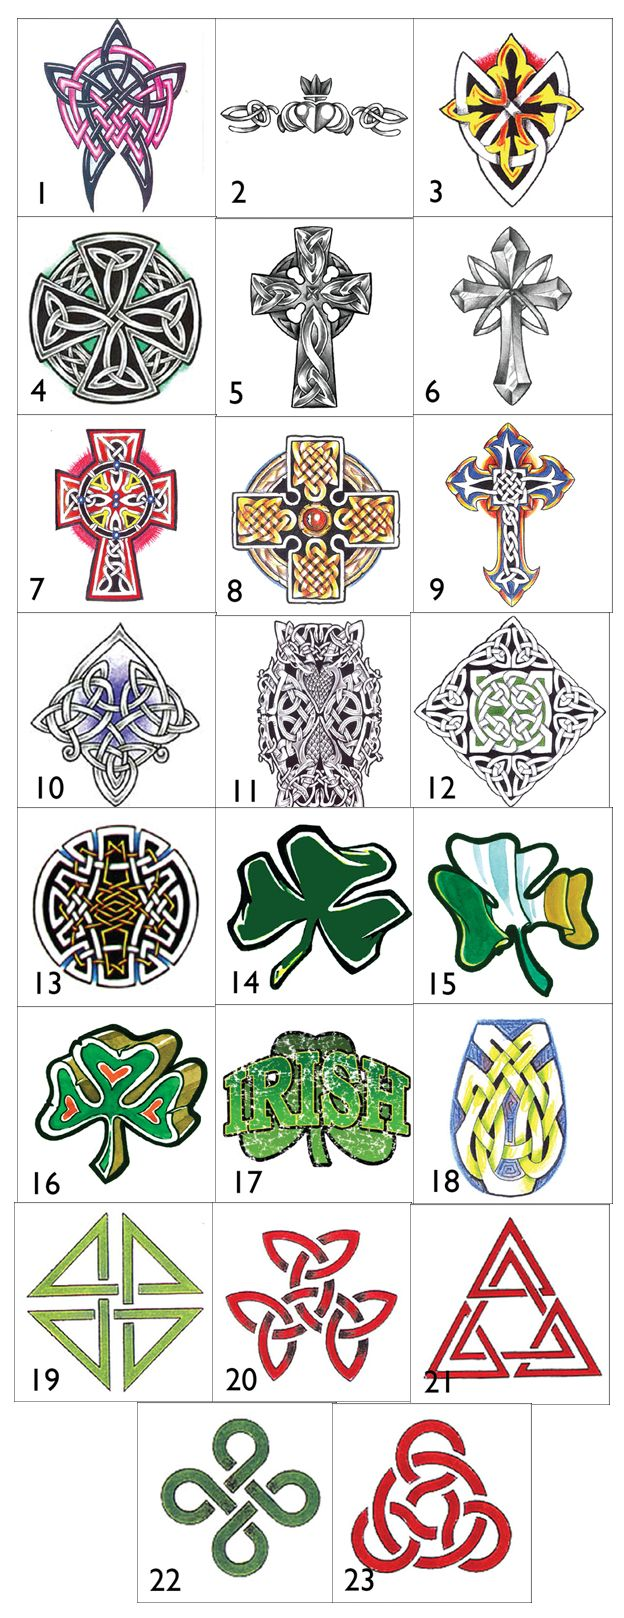 Irish Celtic Symbols And Their Meanings Irish celtic symbols